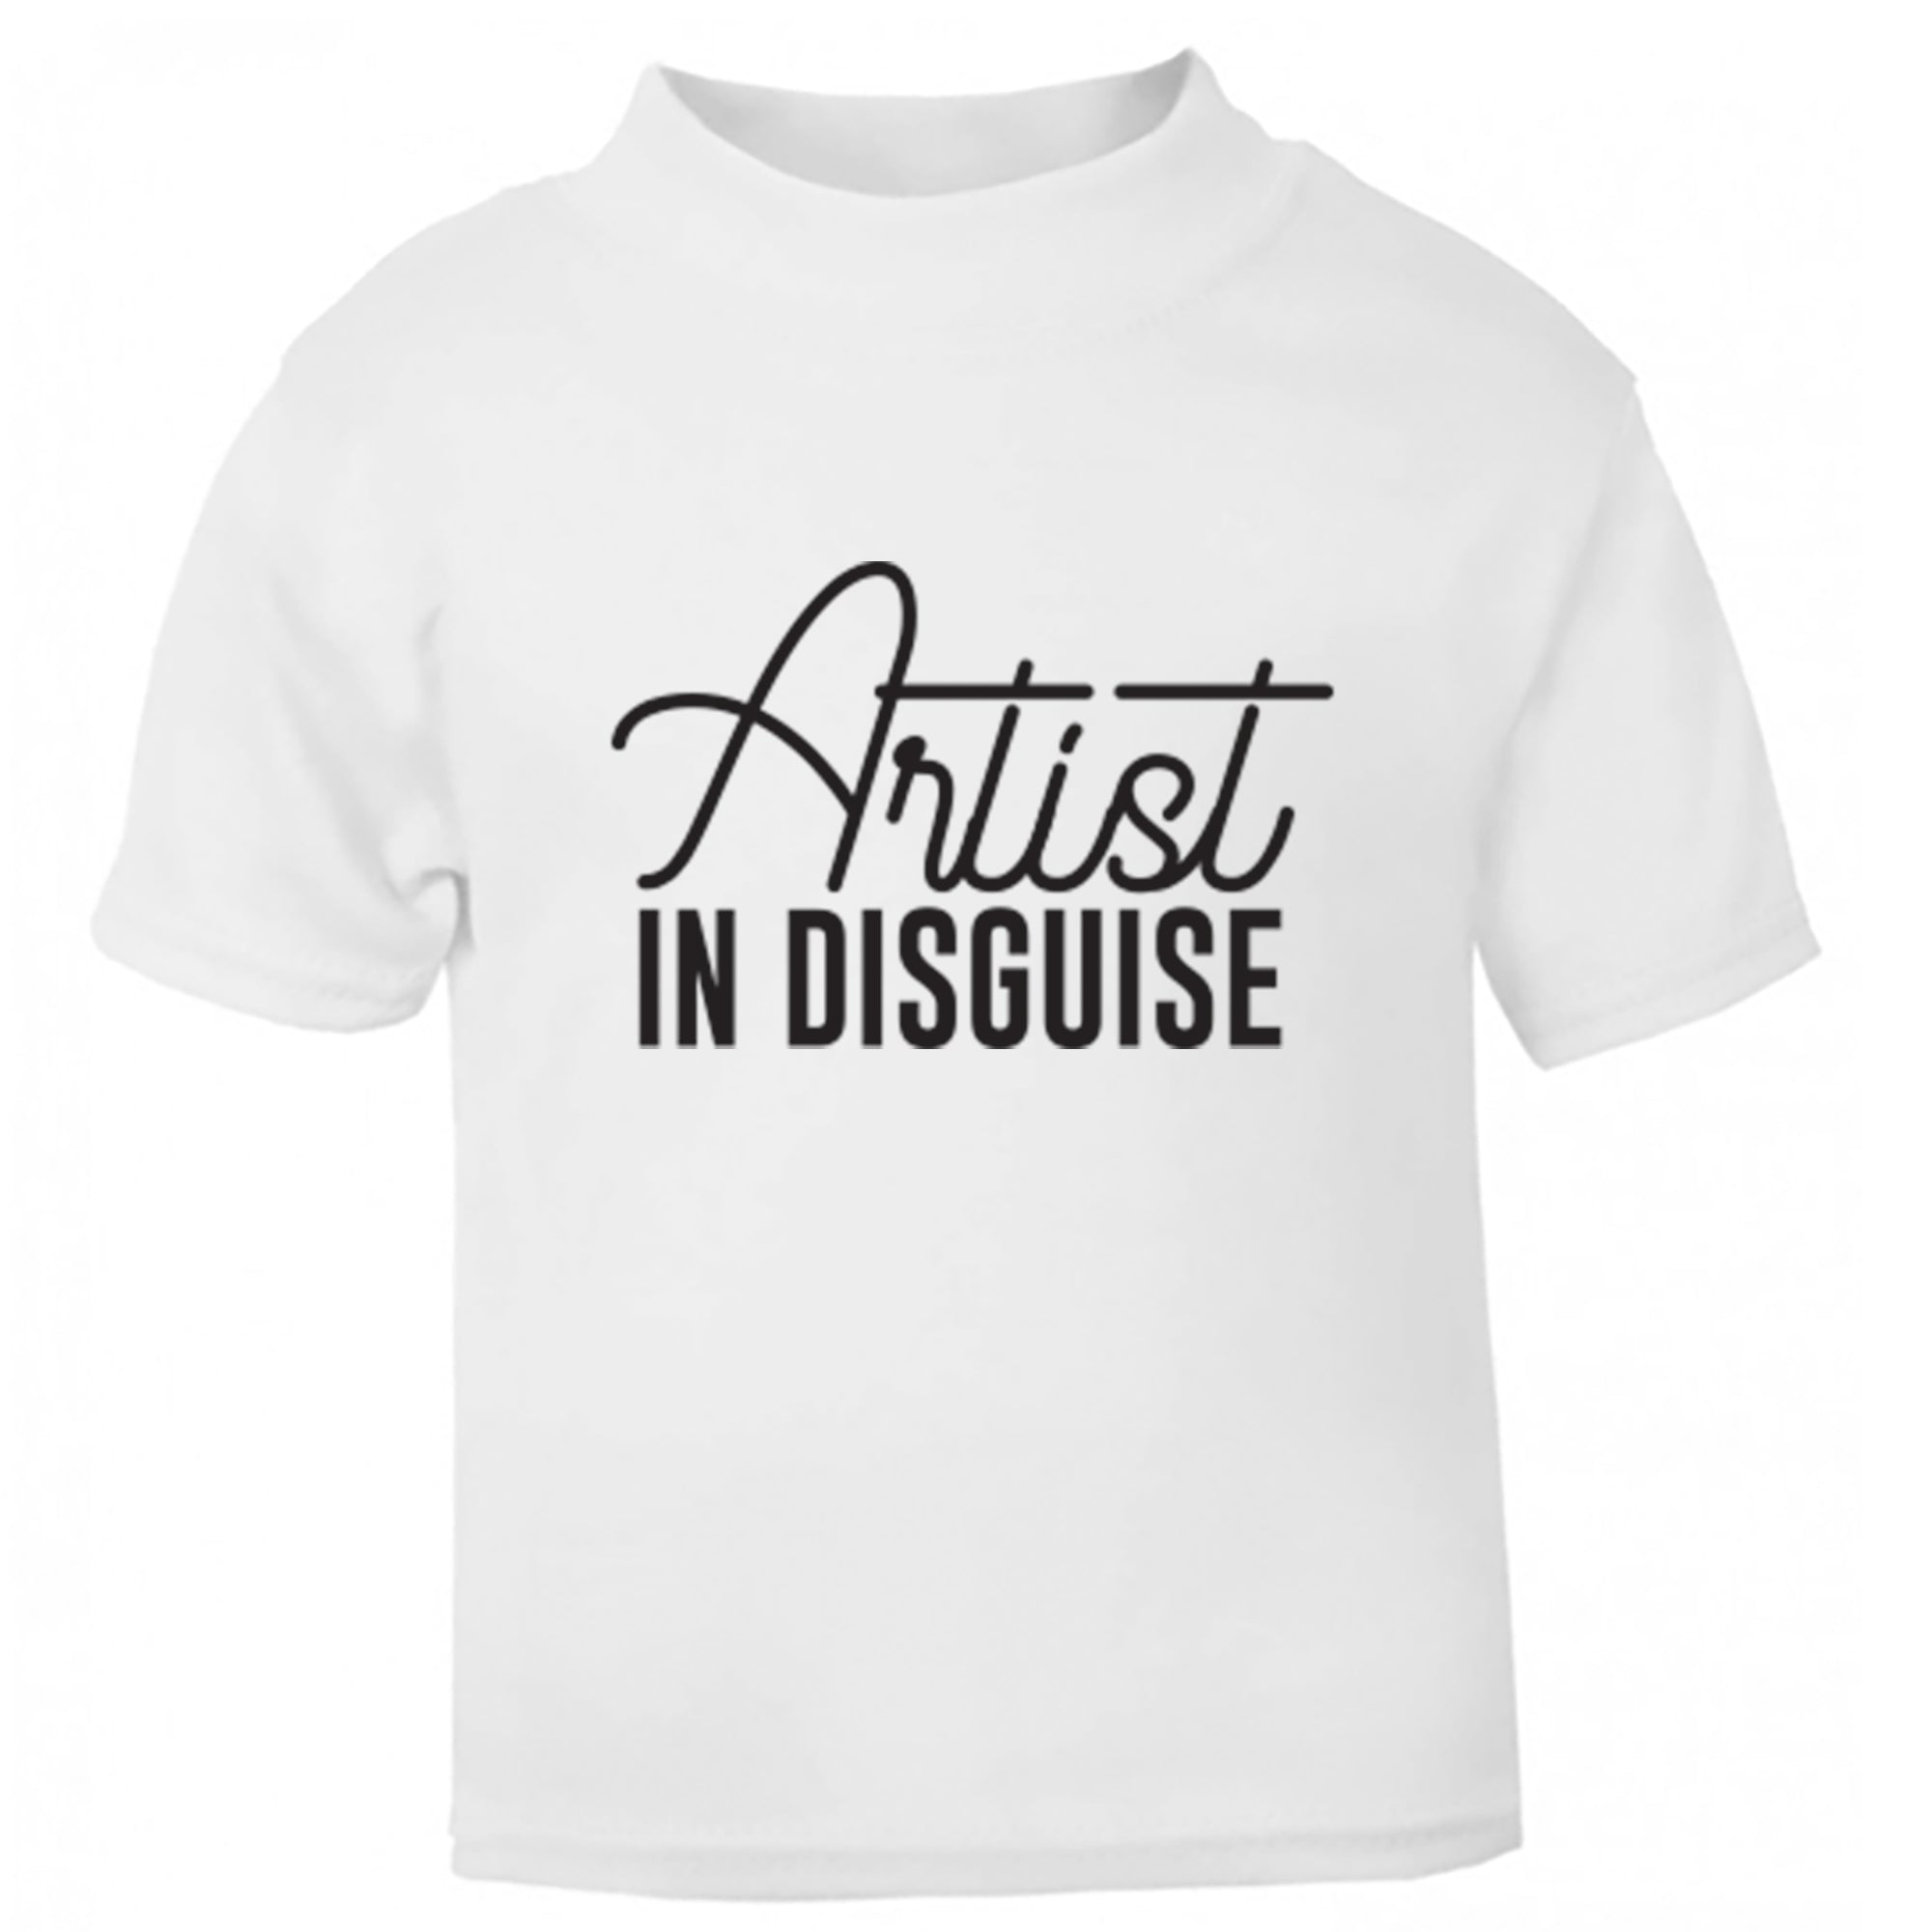 Artist In Disguise Childrens Ages 3/4-12/14 Unisex Fit T-Shirt S0070 - Illustrated Identity Ltd.